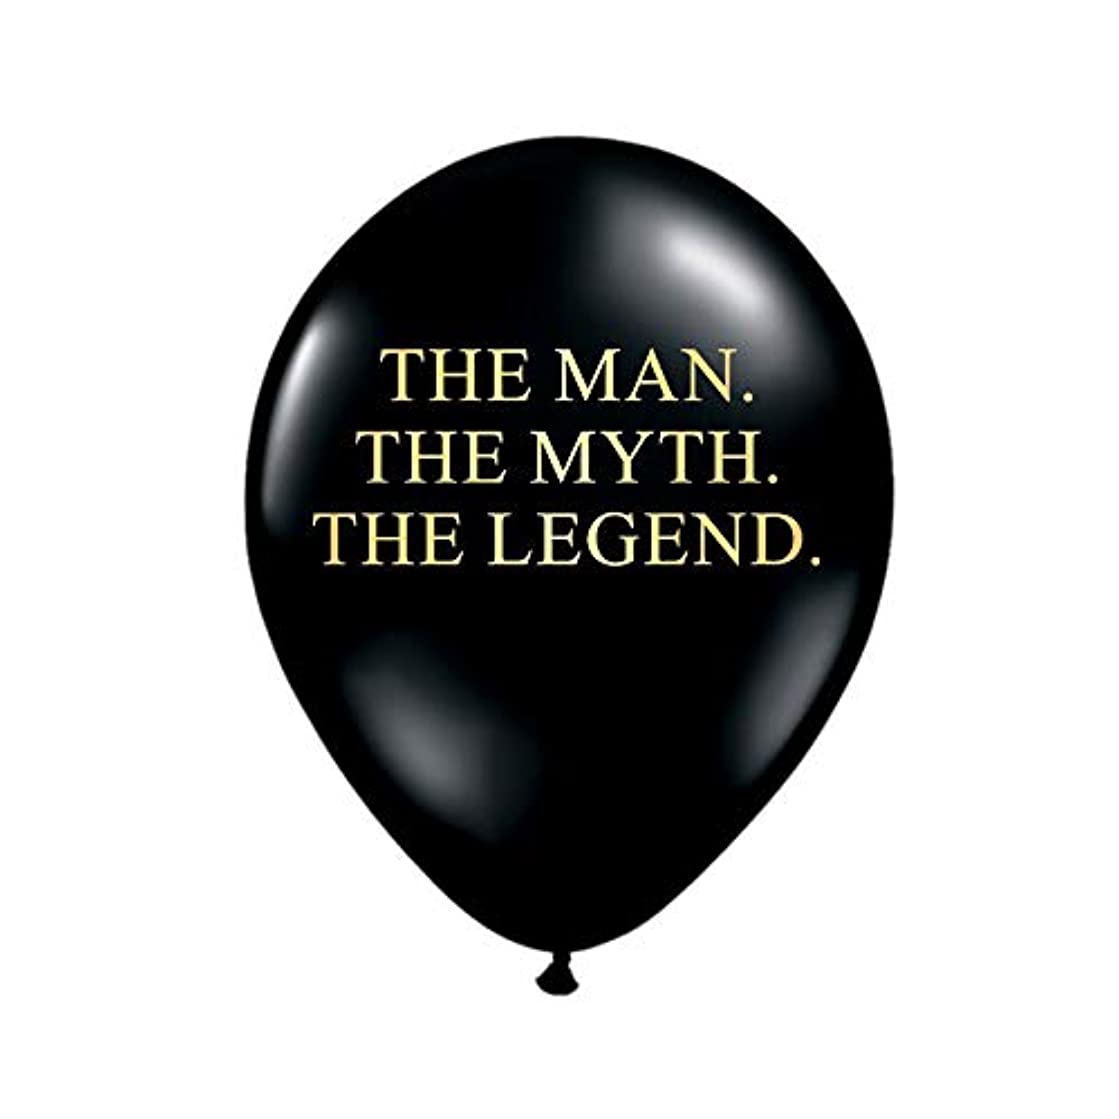 White Rabbits Design The Man The Myth The Legend Balloons in Black and Metallic Gold, Birthday Party Decorations for Him, Funny Birthday Balloons Decorations, Funny Balloons, Set of 3